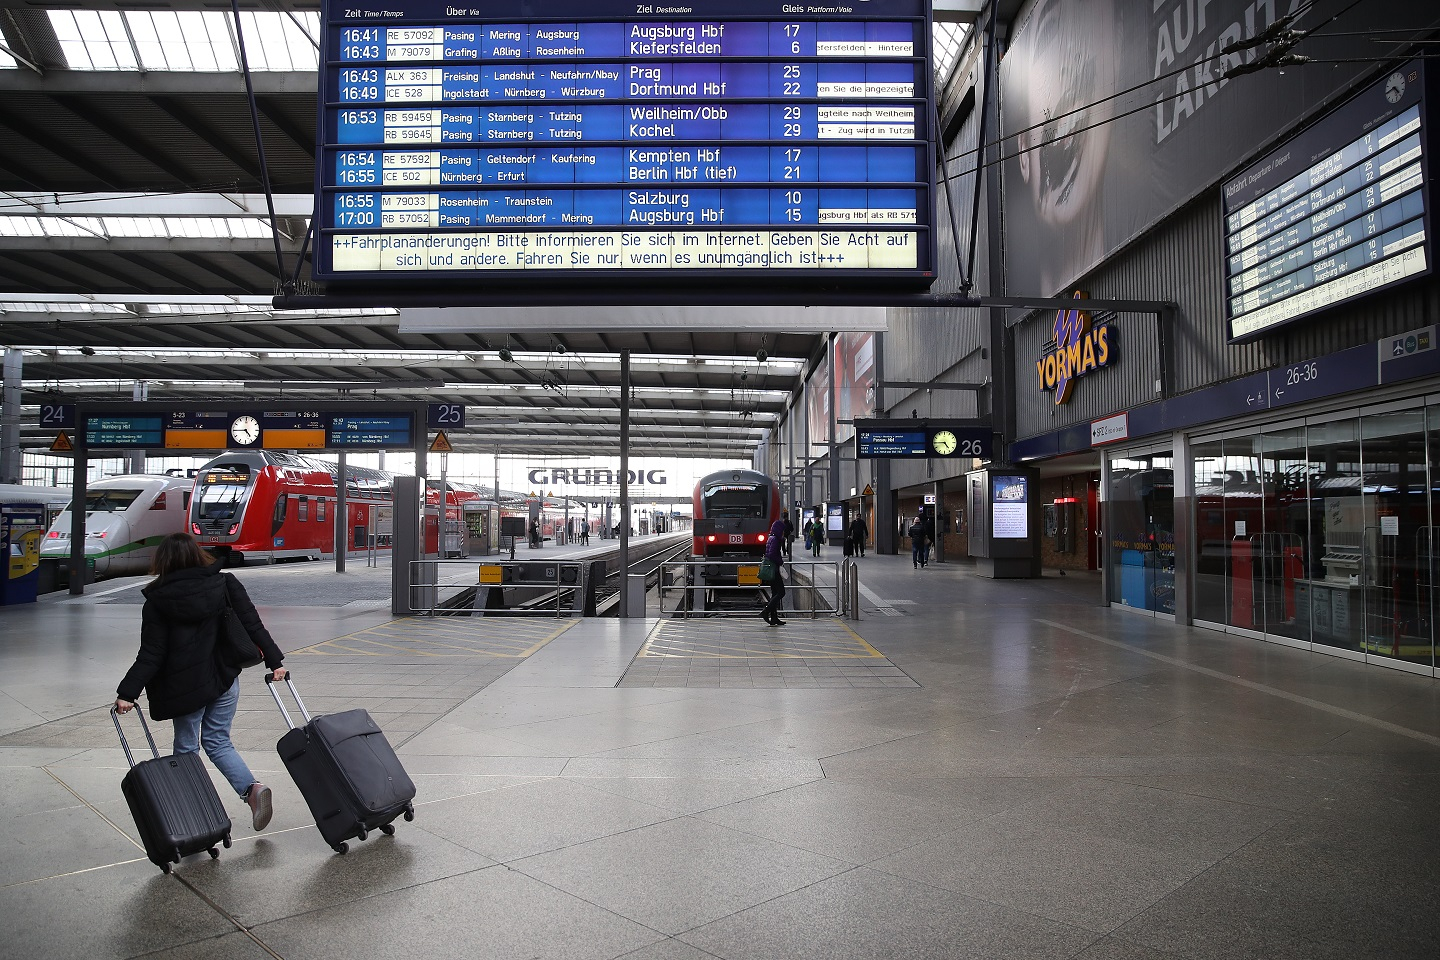 A photograph of a woman is seen at the Munich Main Station during the coronavirus crisis on March 31, 2020 in Munich, Germany.